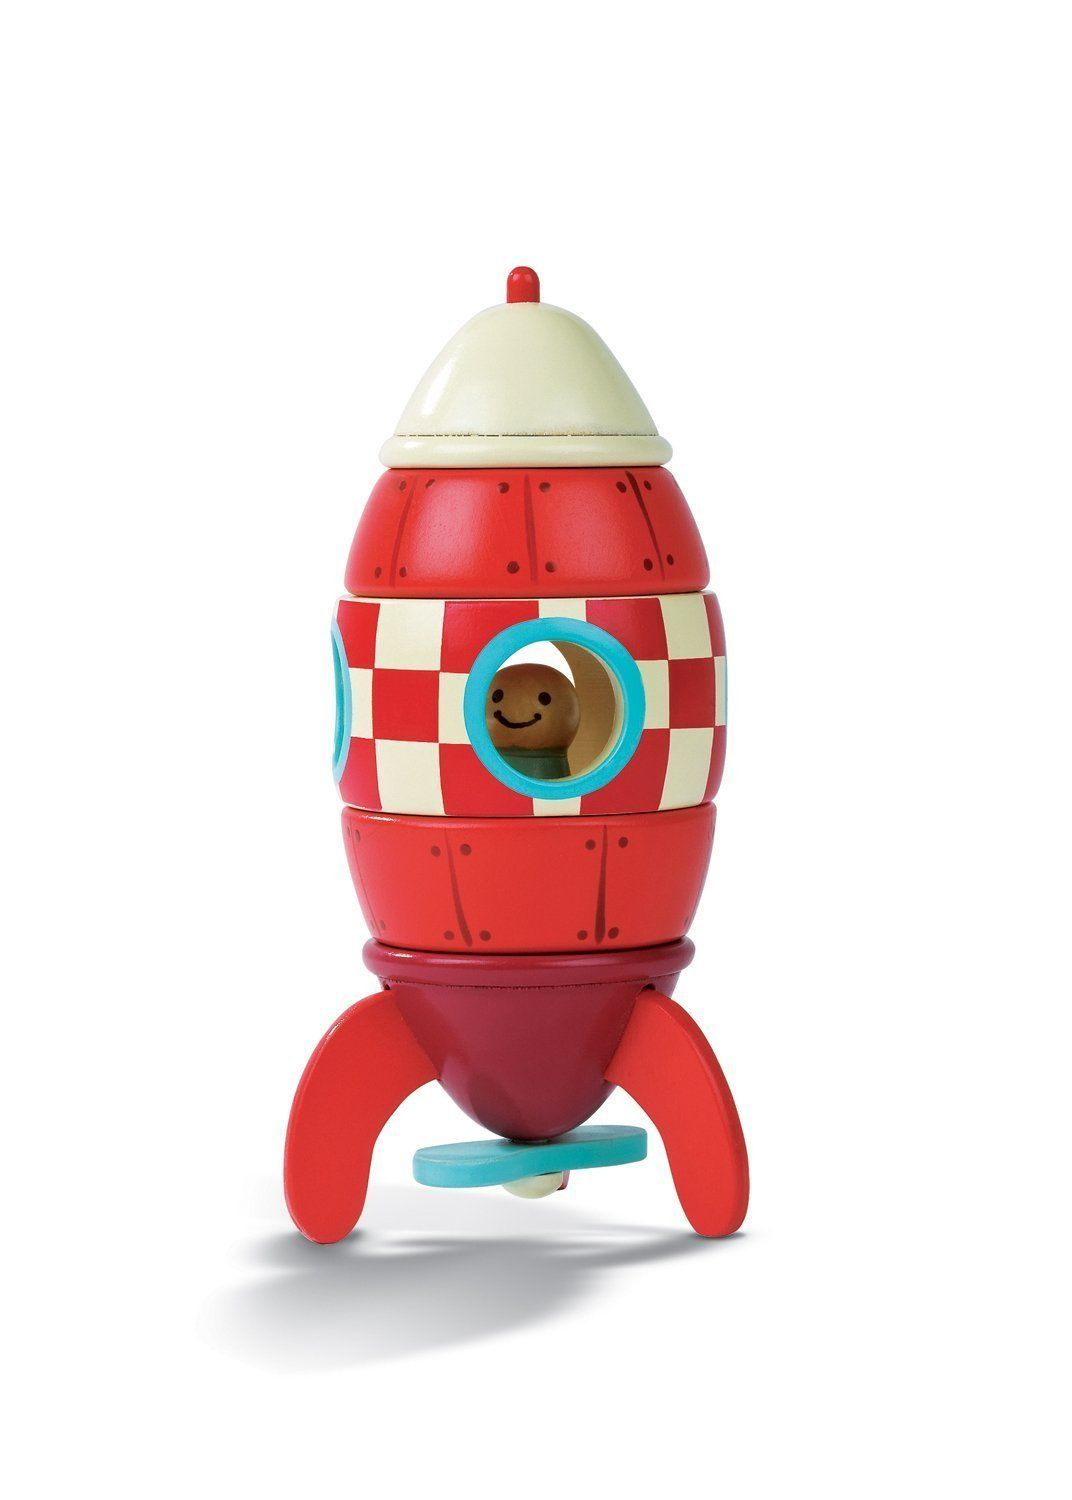 """This is an adorable 5 piece magnetic rocket """"puzzle."""" Perfect for children aged 18 months and up, children can put this simple magnetic toy together and play with the rocketship."""